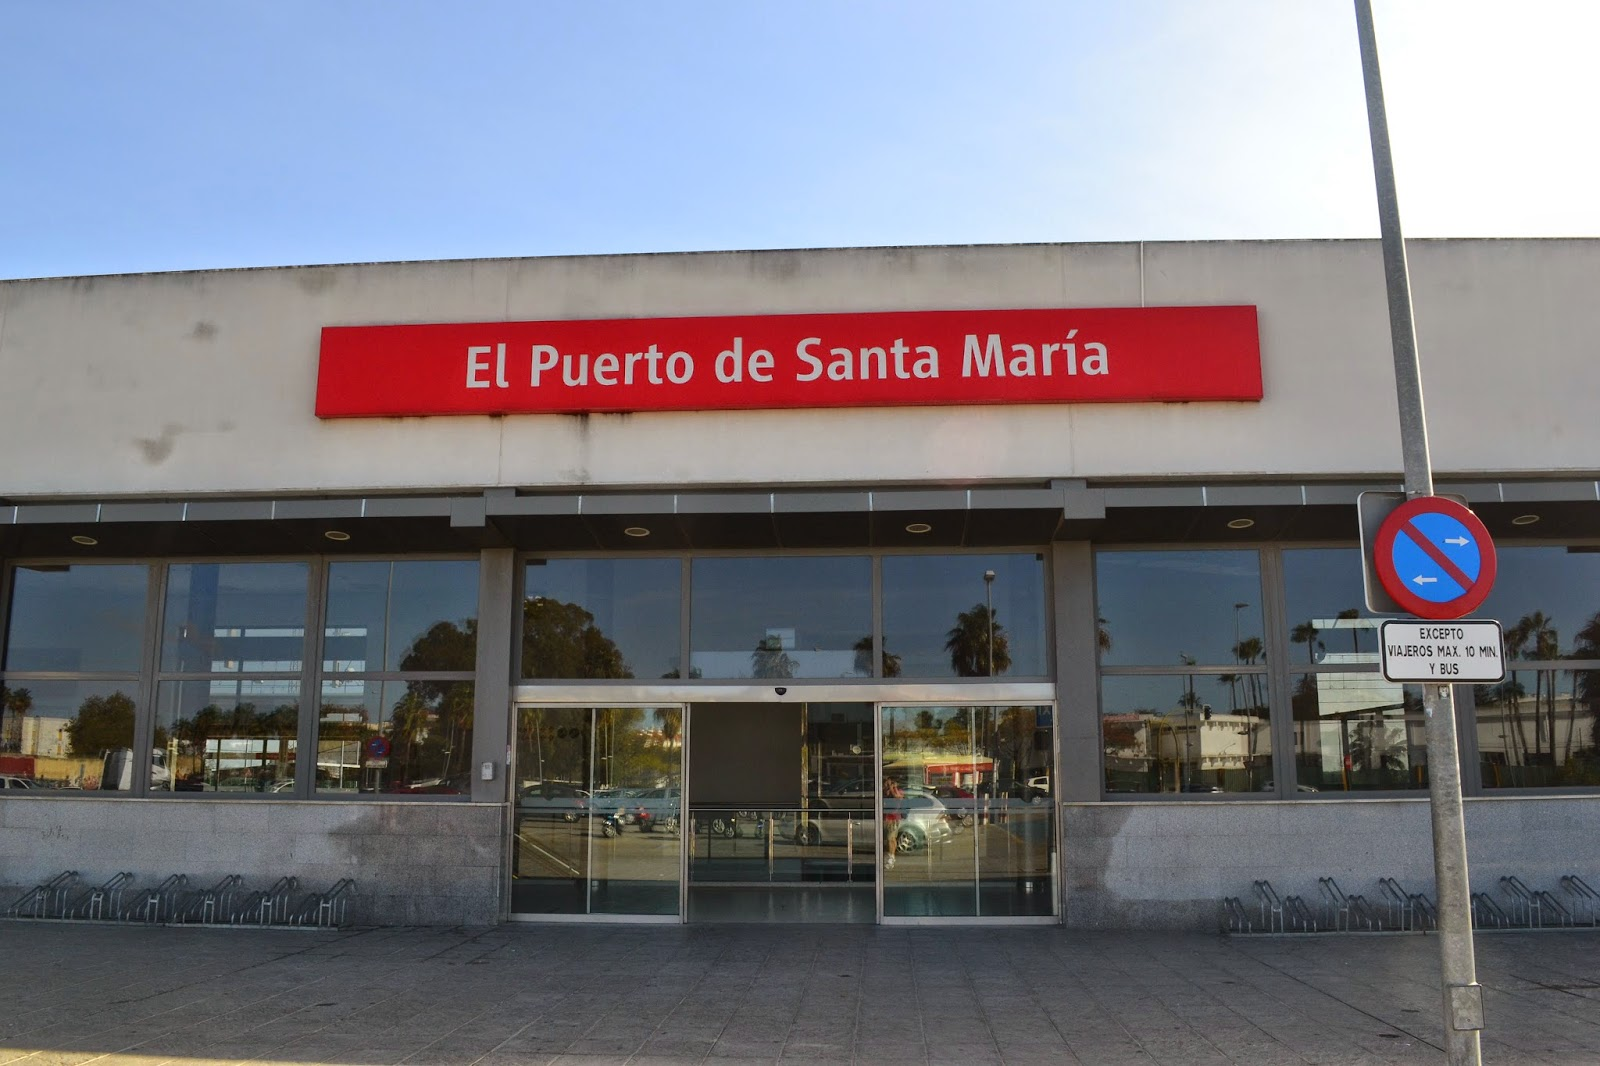 el puerto de santa maria single personals Travel from madrid to el puerto de santa maria, compare and book tickets to find the cheapest & fastest journey madrid to el puerto de santa maria trains, compare and book trains to find the cheapest & fastest journey.